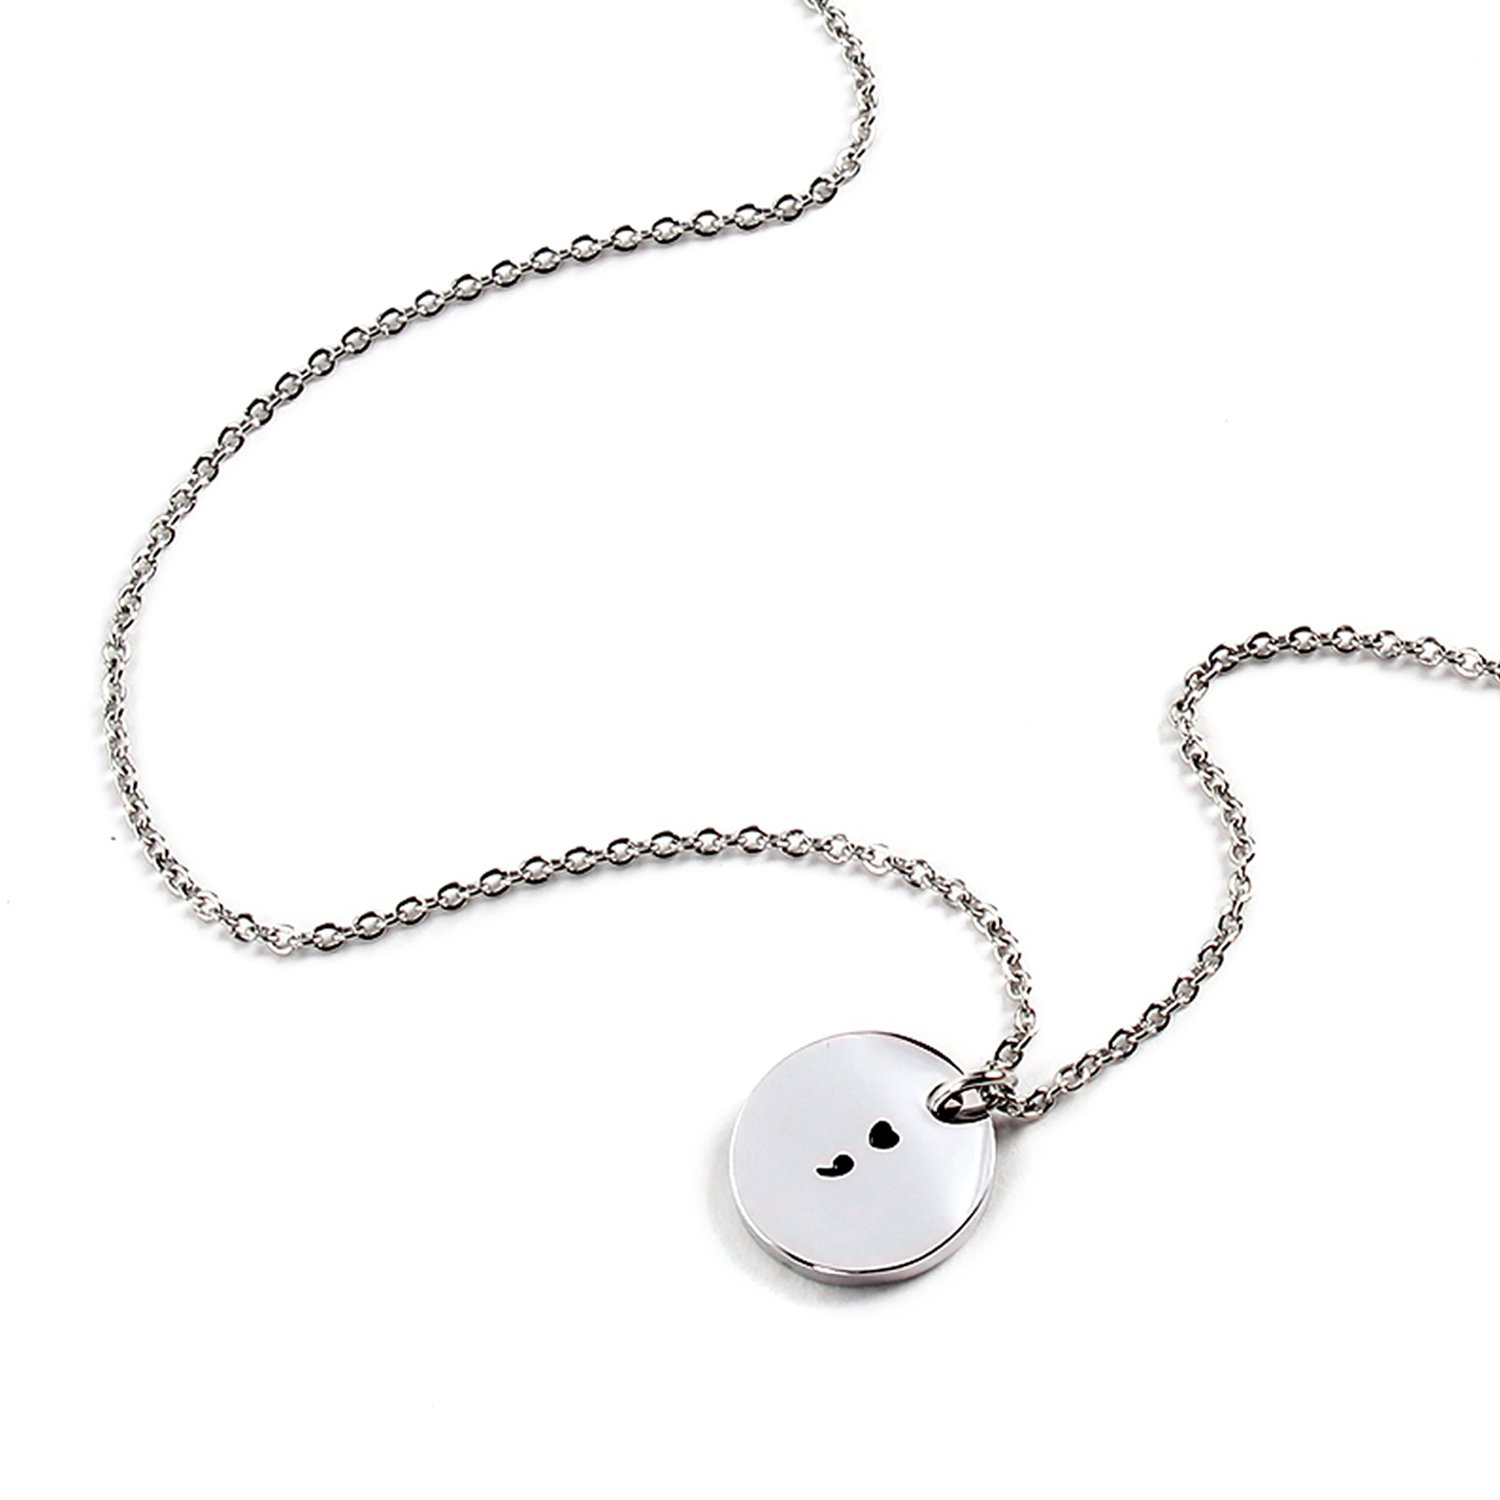 Yolanda Stainless Steel Heart Semicolon Necklace Motivational Inspirational Gift Hand Stamped Jewelry